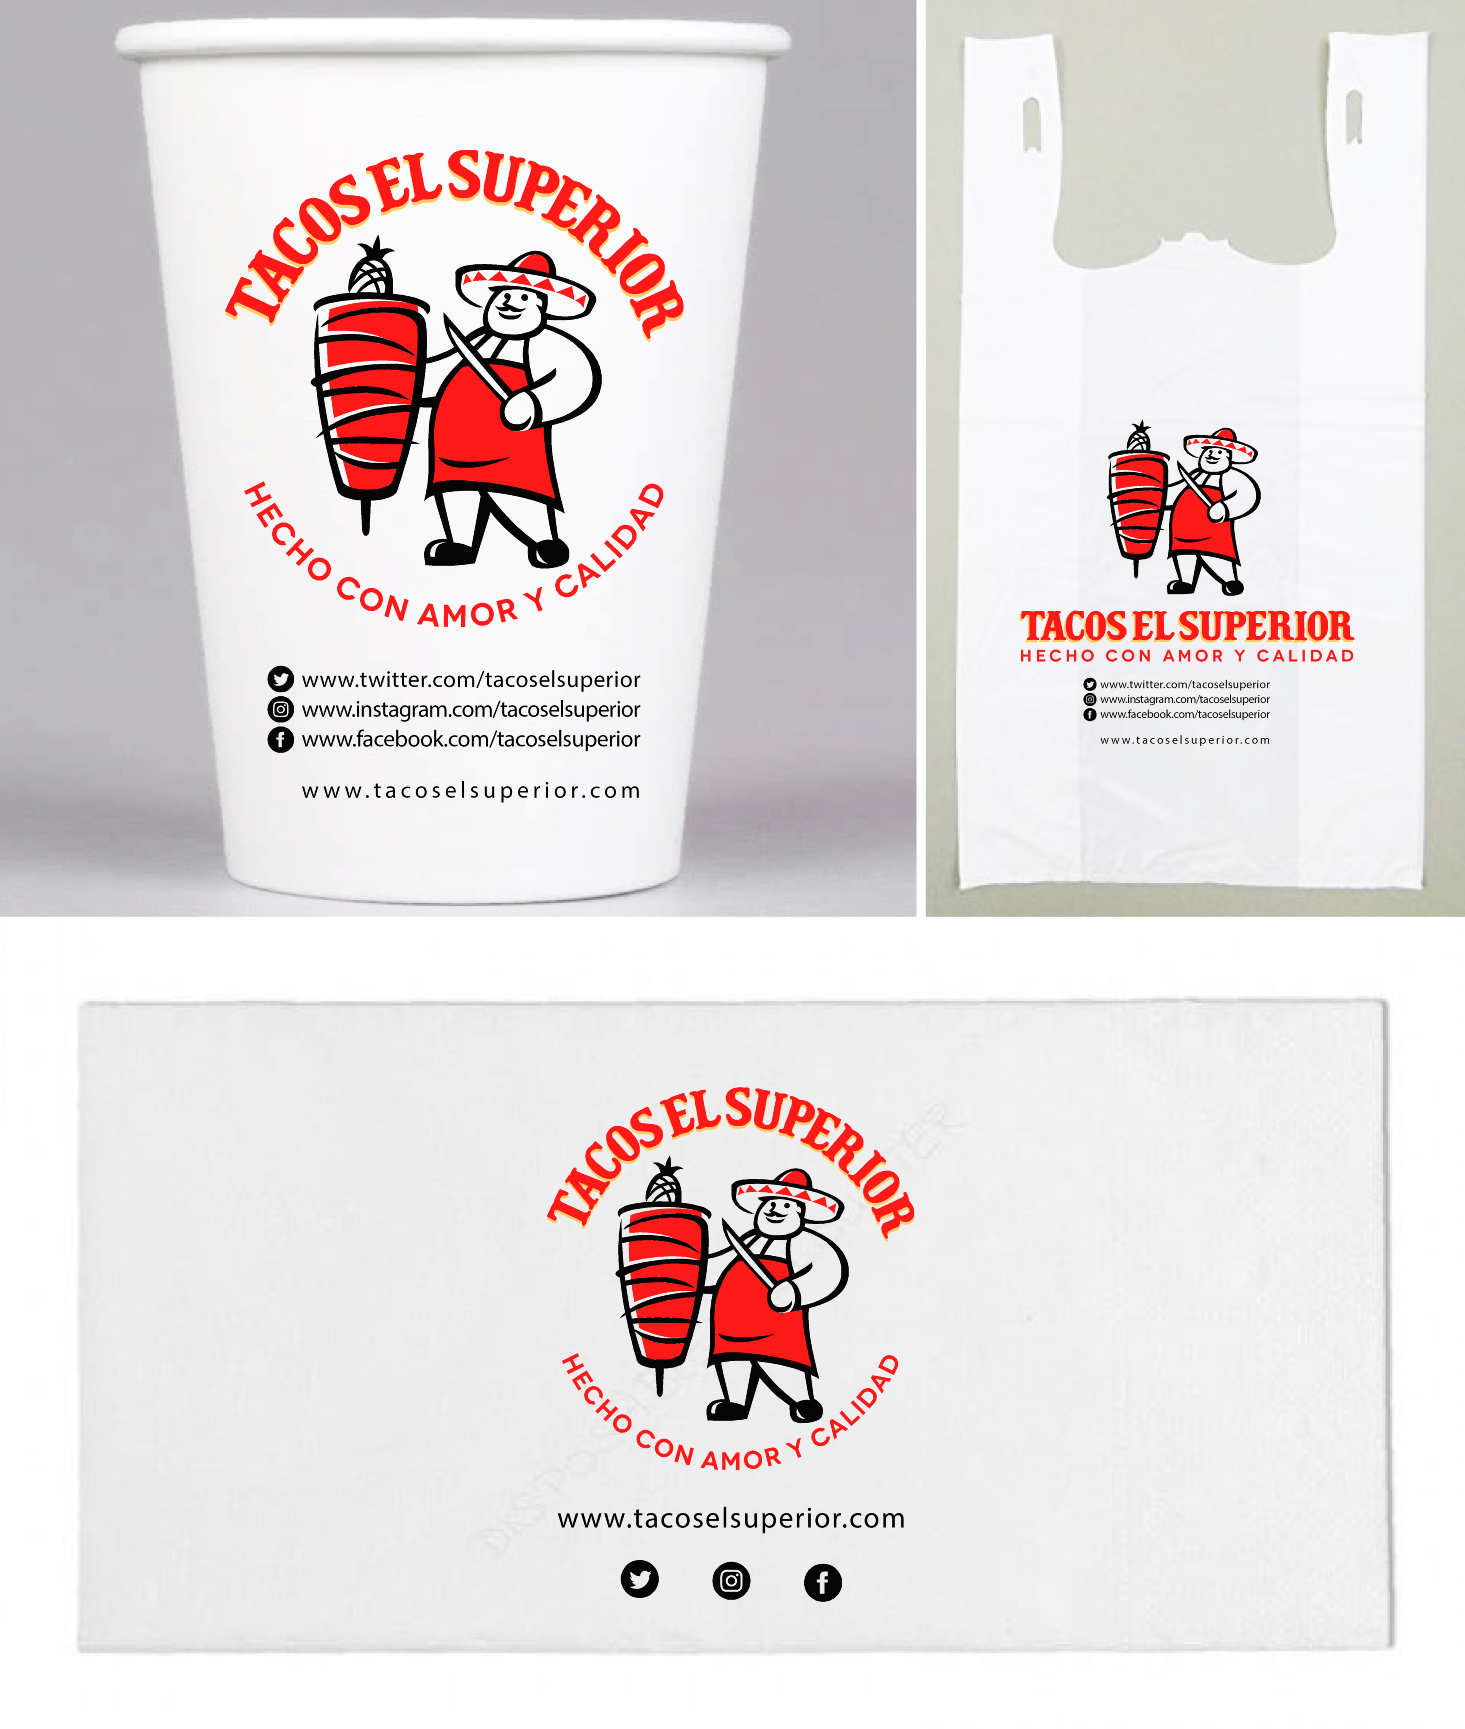 Packaging for Cups, Napkins, and bags